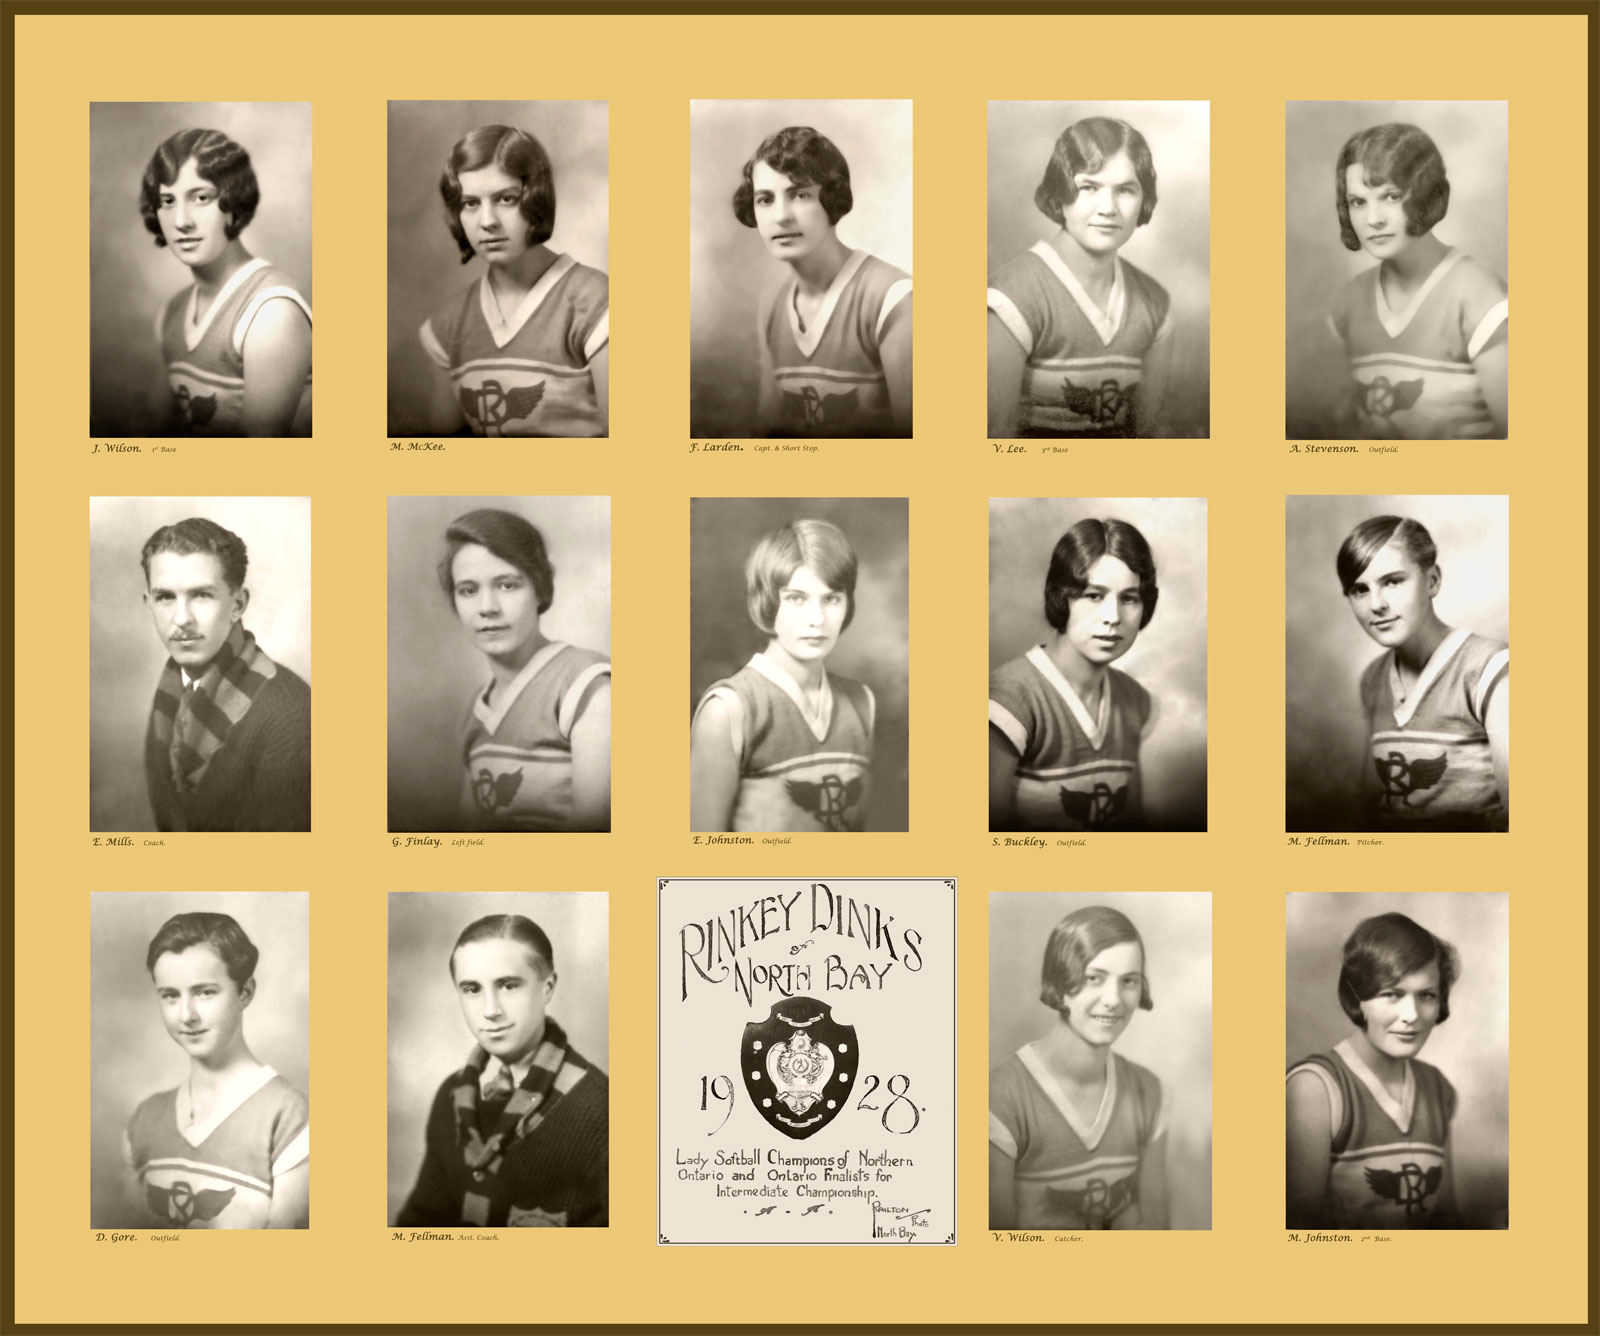 Rinkey Dinks of North Bay 1928 Lady Softball Champions of Northern Ontario and Ontario Finalists for Intermediate Championship.